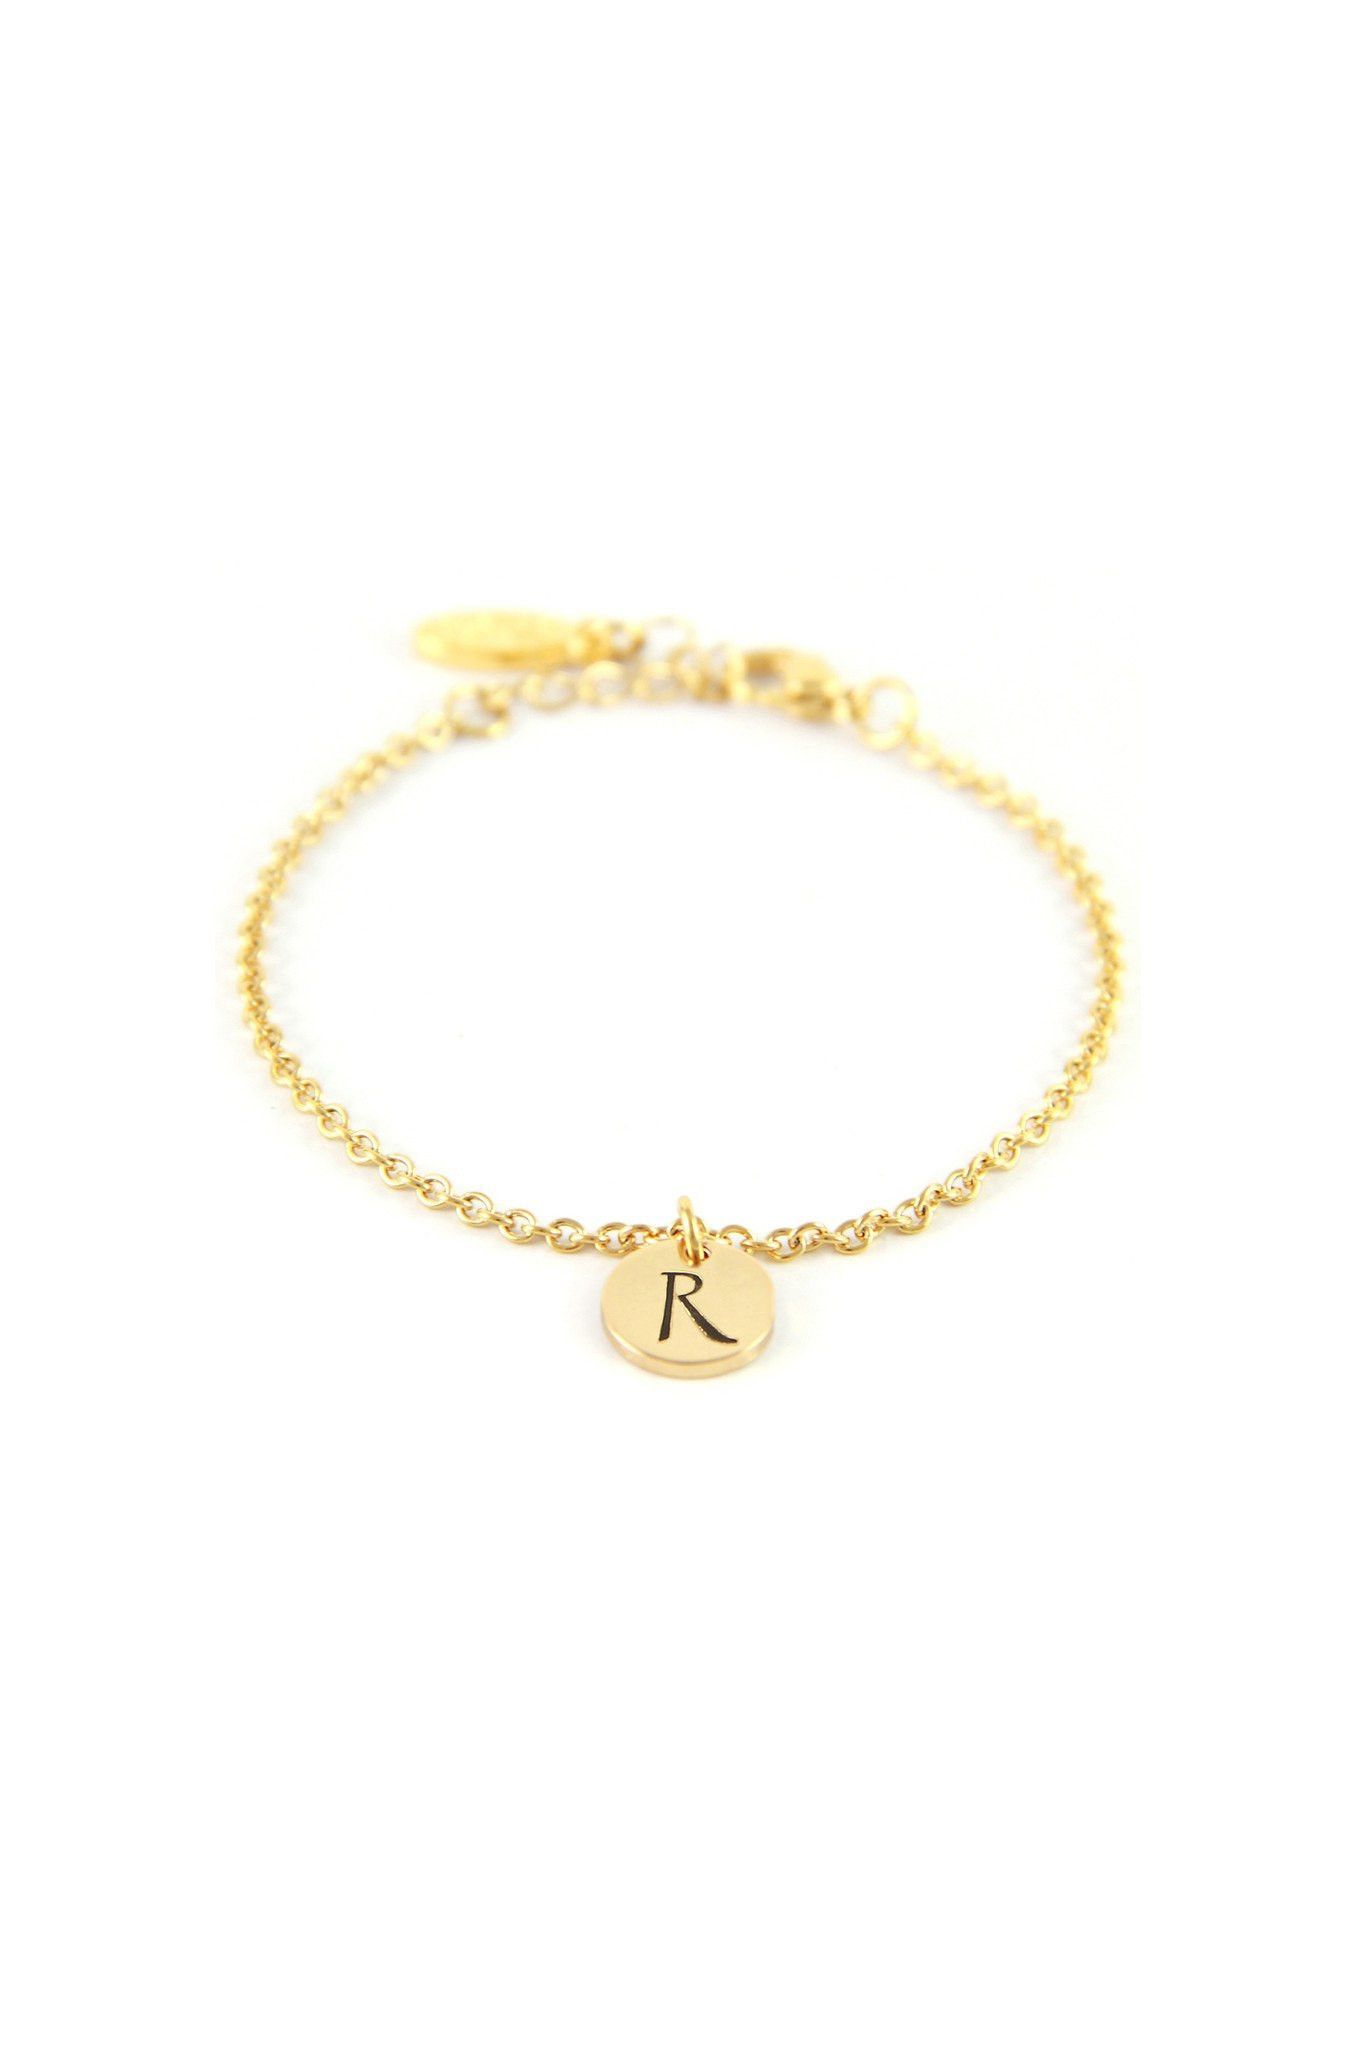 R gold initial bracelet initial bracelet initials and products